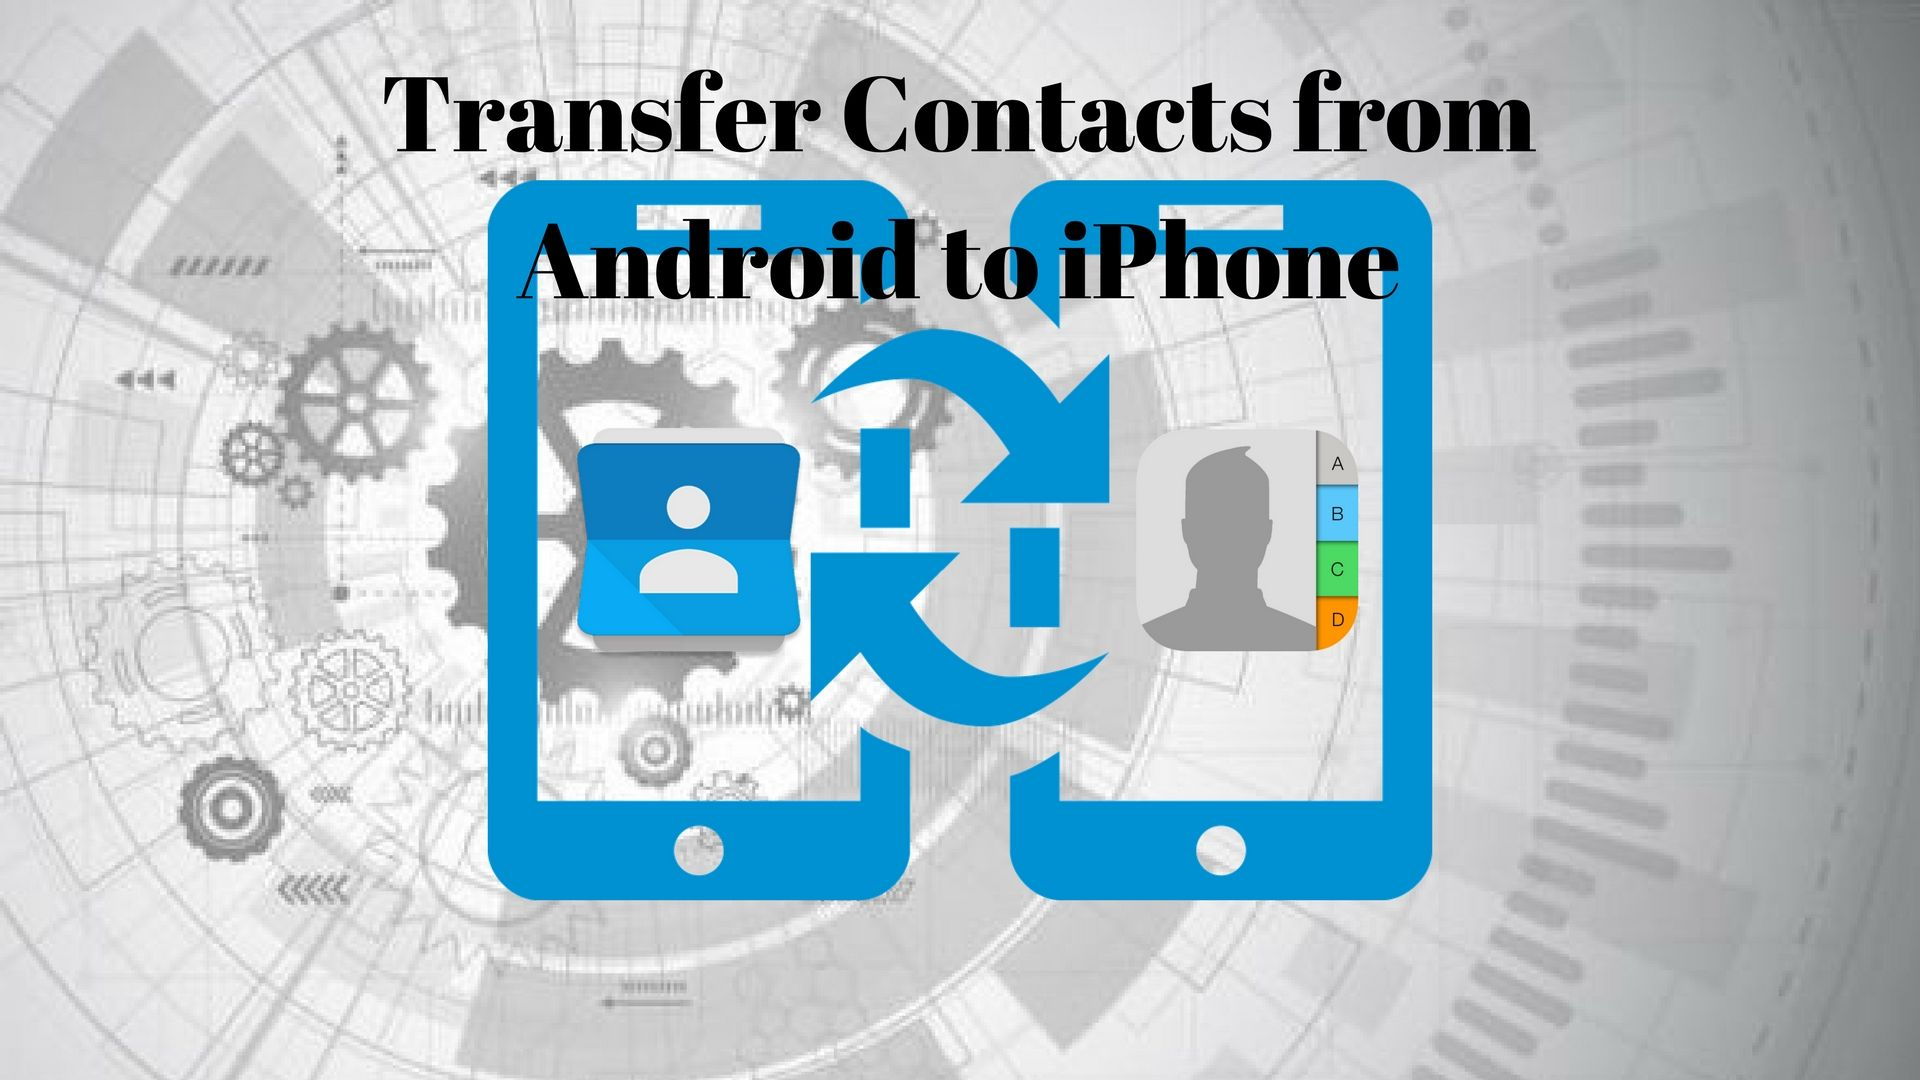 transfer contacts from android to iphone transfer contacts from android to iphone quicktip 1944